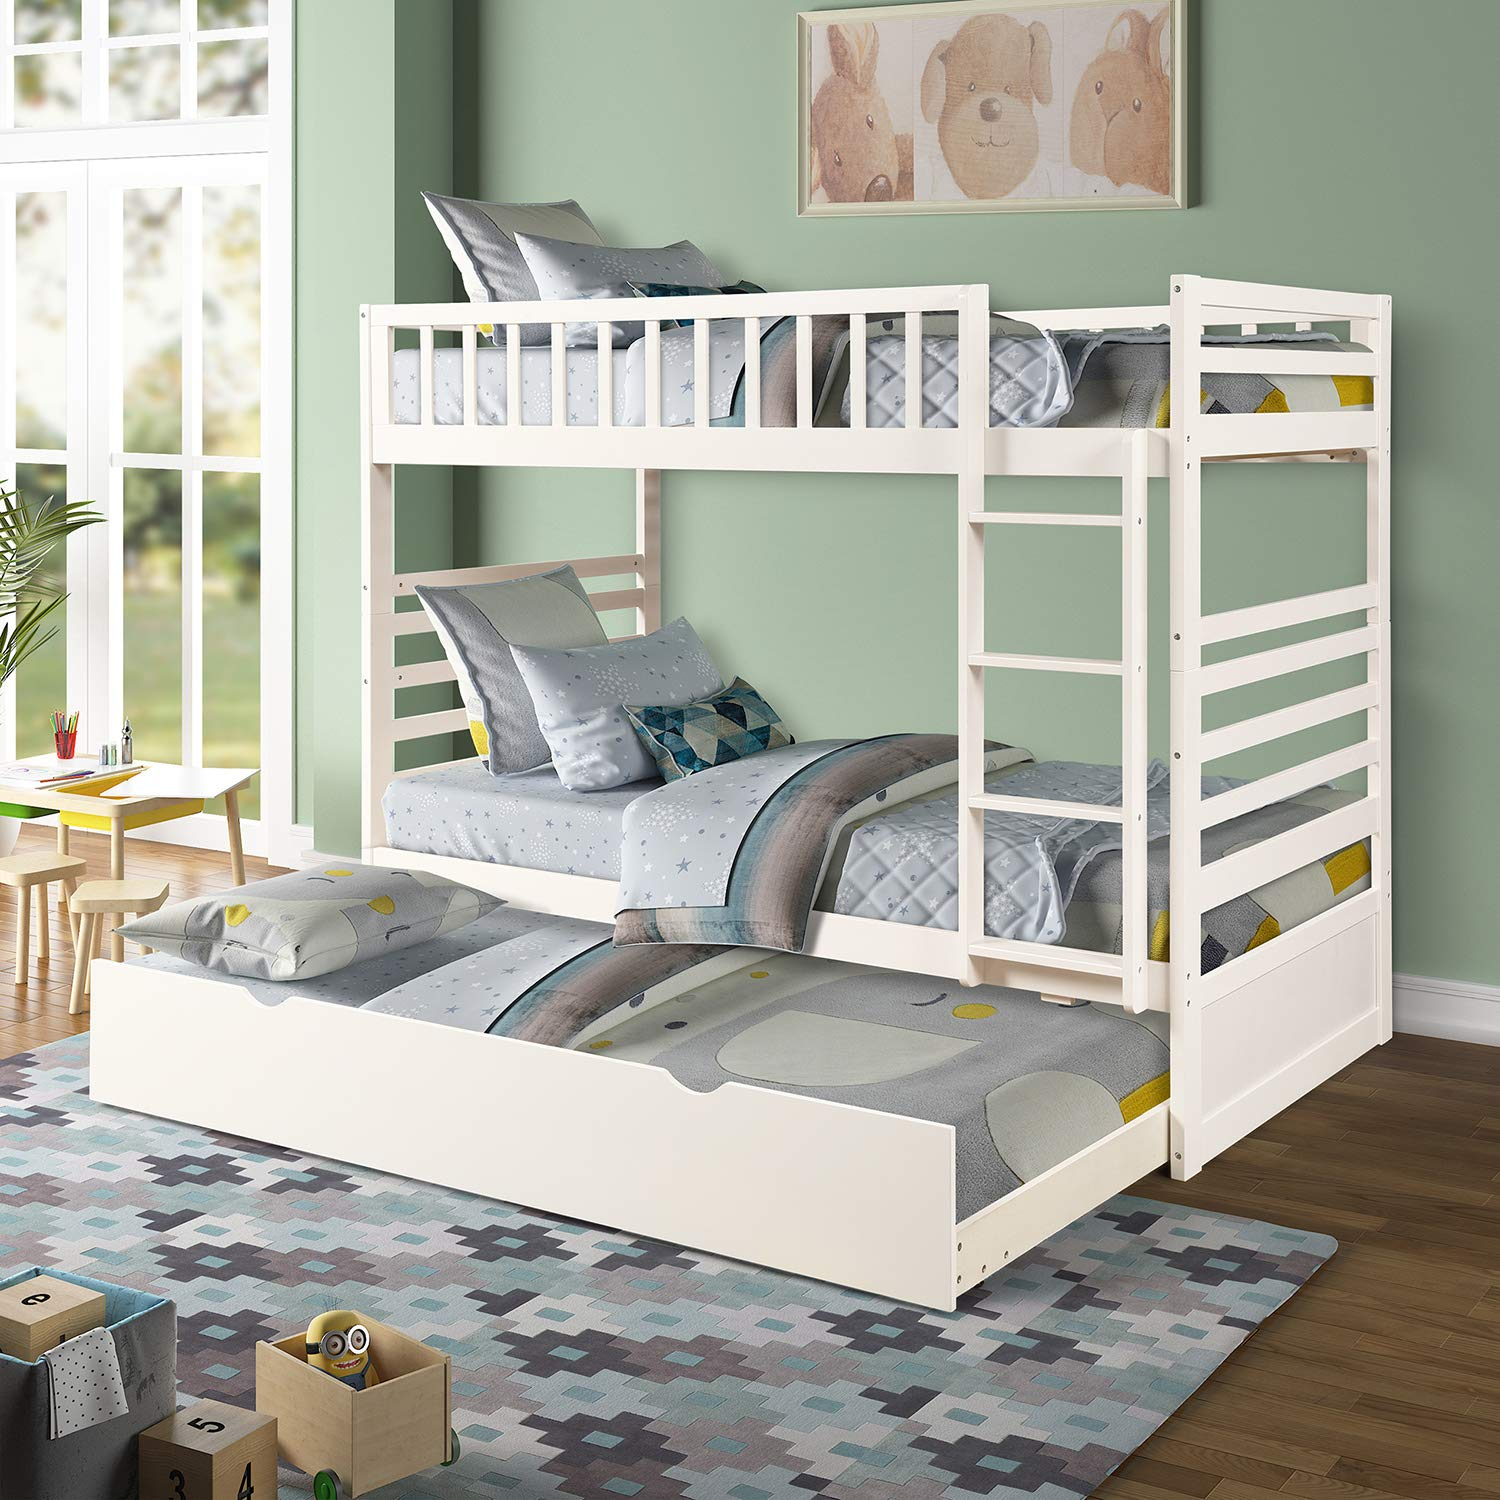 Twin Over Twin Bunk Bed, Rockjame Space Saving Design Sleeping Bedroom Furniture with Trundle Solid Wood Bunk Bed, Ladder and Safety Rail for Boys and Girls White